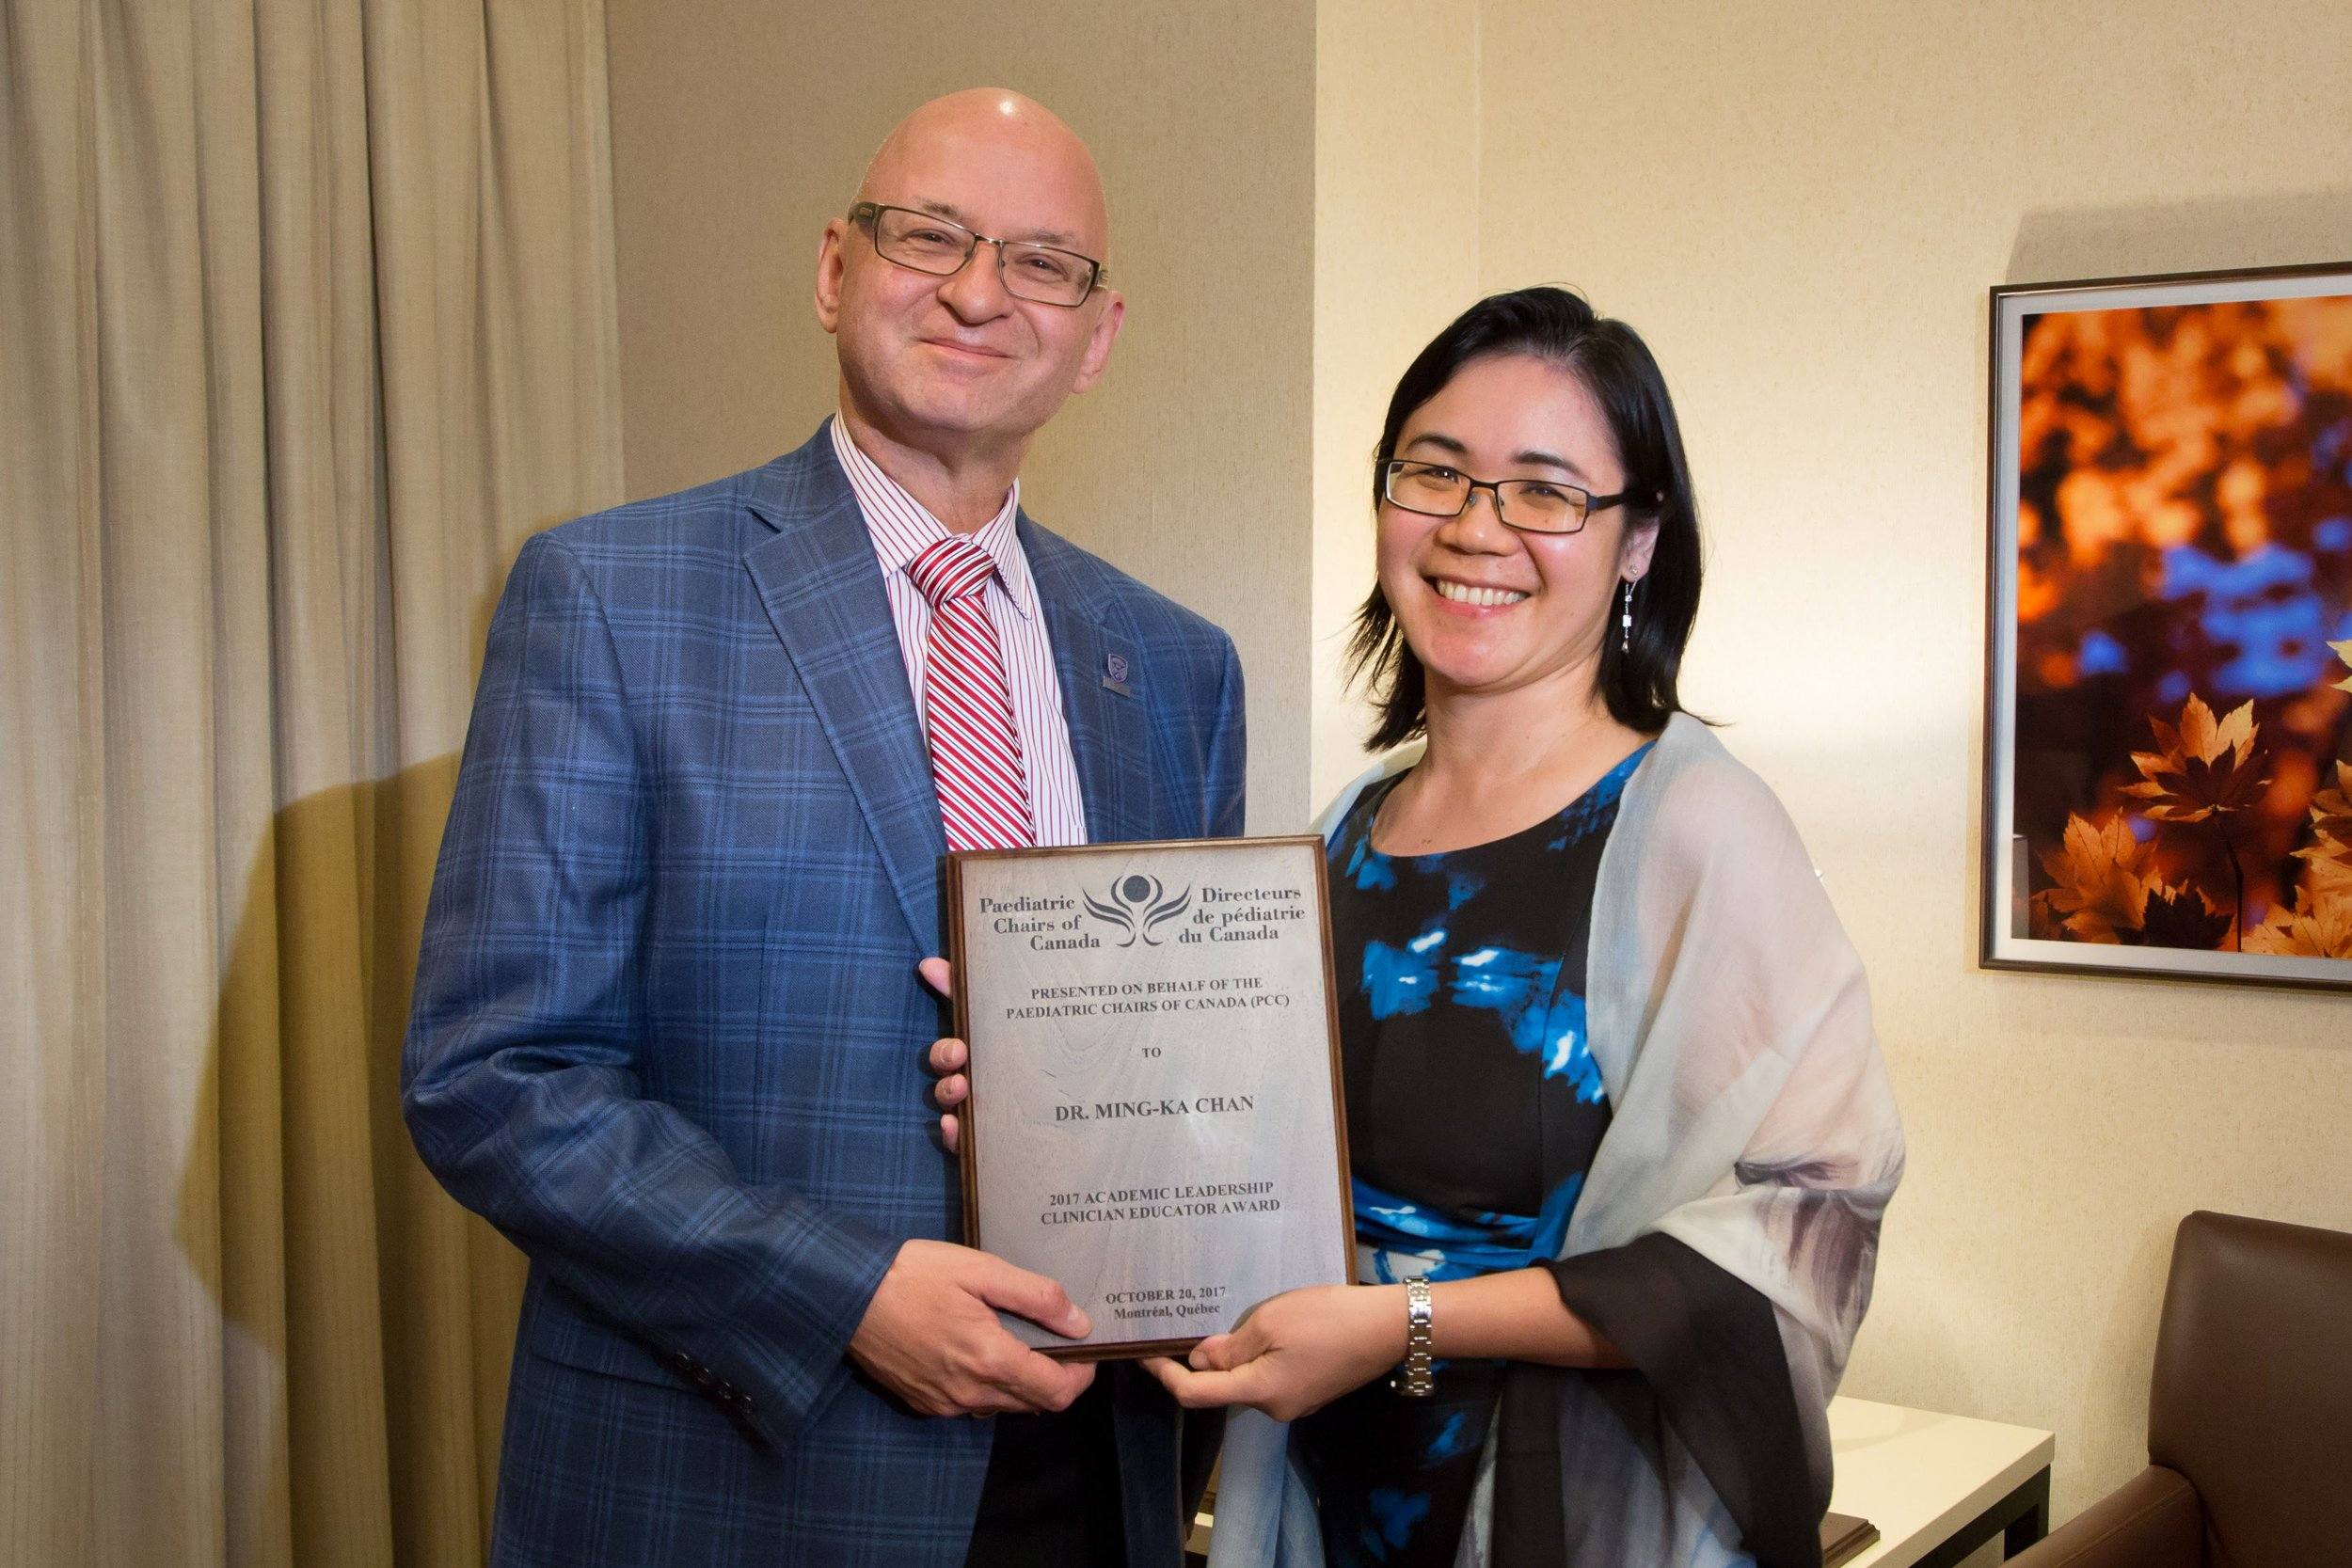 Dr. Michael Rieder (University of Western Ontario on behalf of Dr. Terry Klassen, University of Manitoba) and Dr. Ming-Ka Chan (Clinician Educator - University of Manitoba).